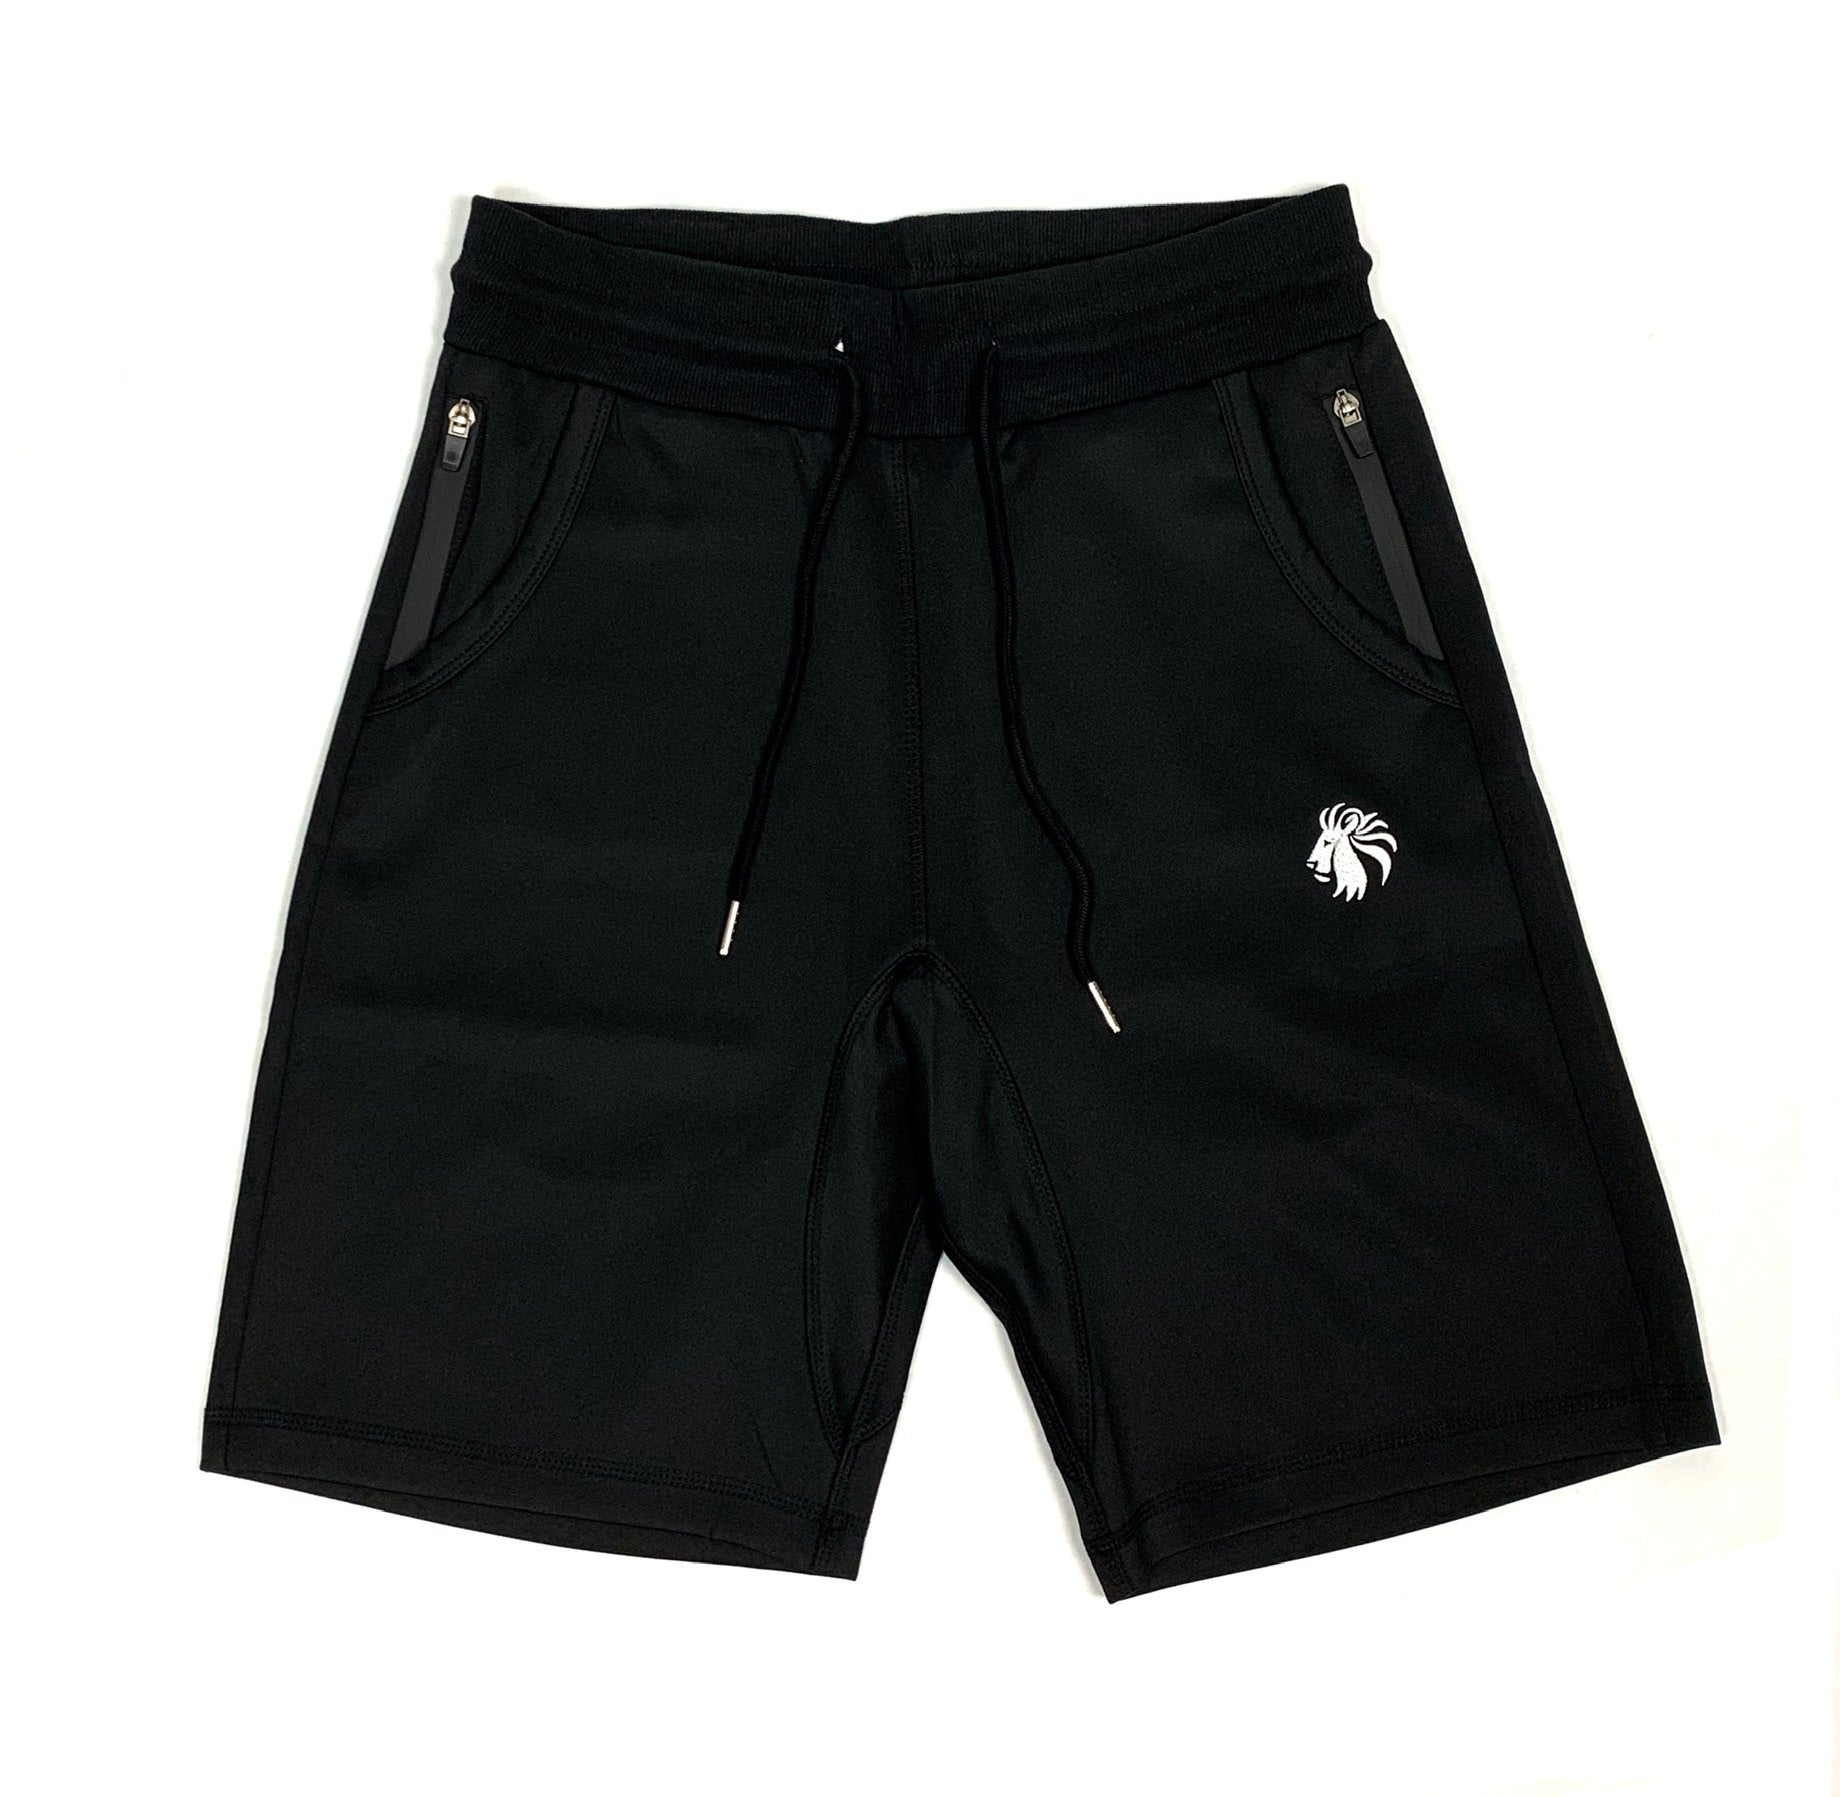 All Purpose Training Short - Black